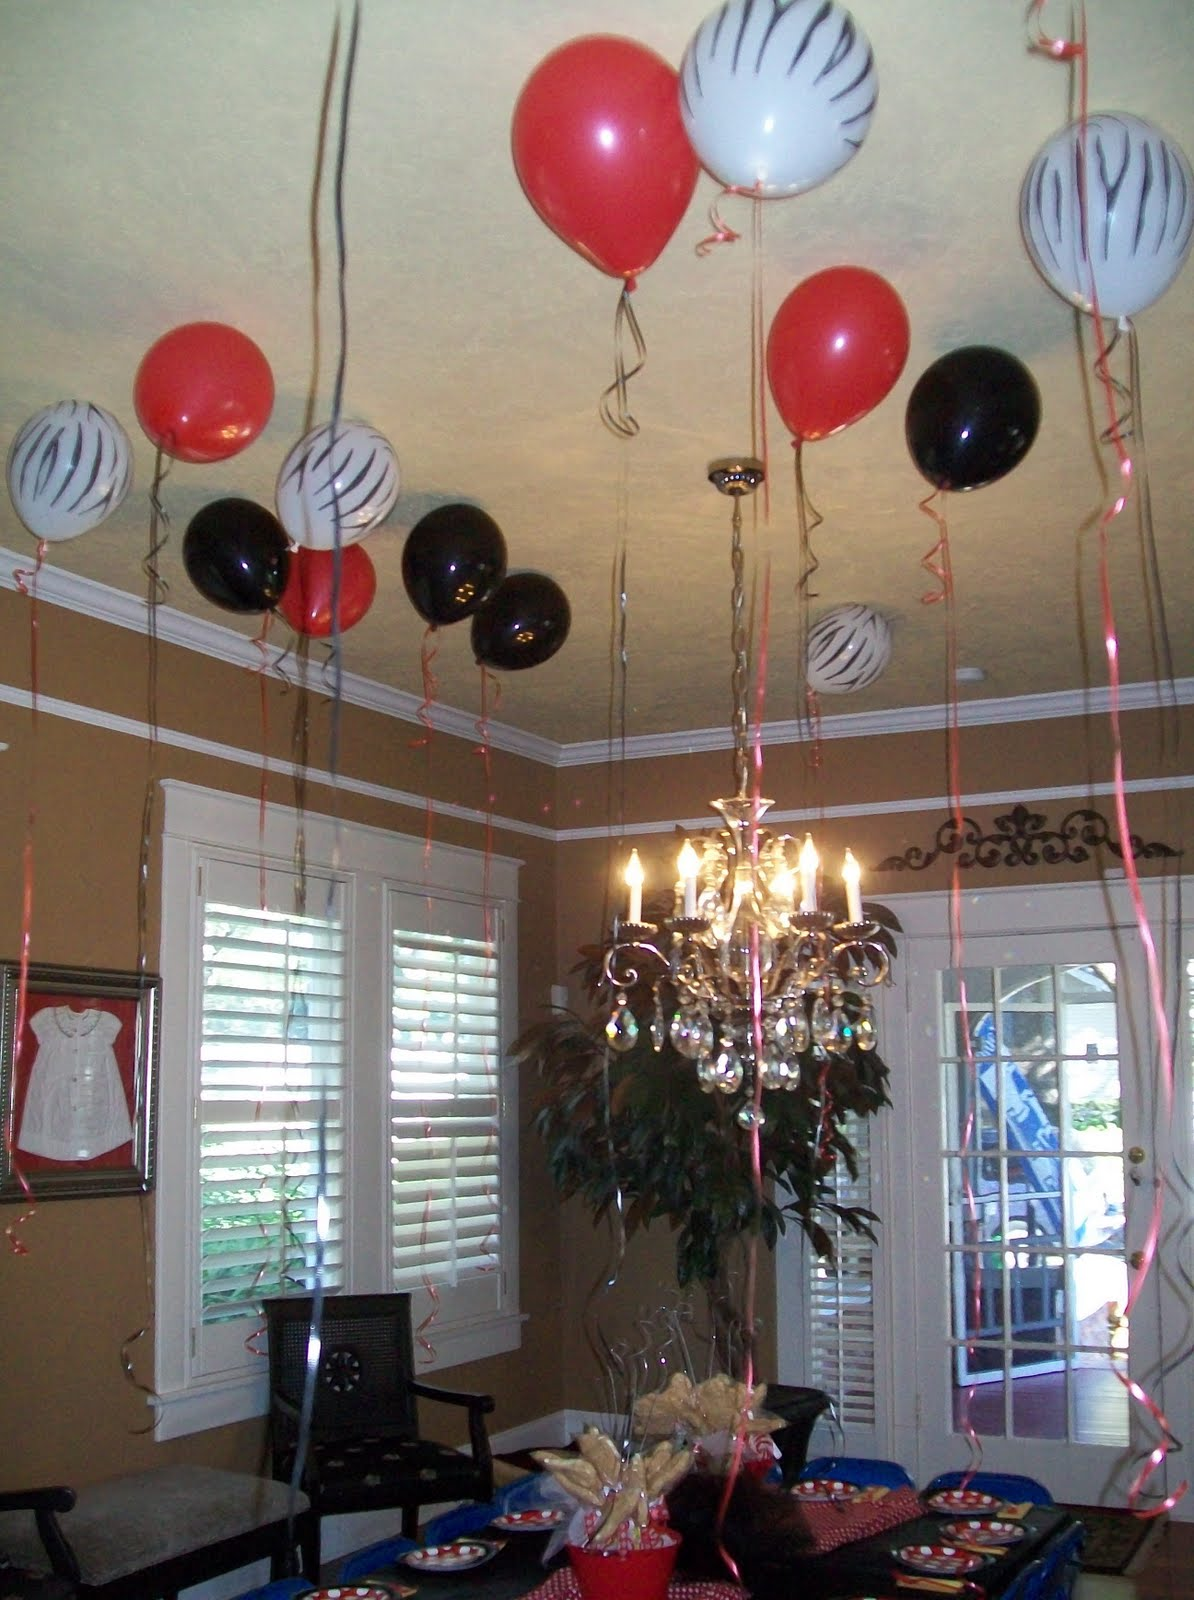 Party People Event Decorating Company Ceiling Balloons